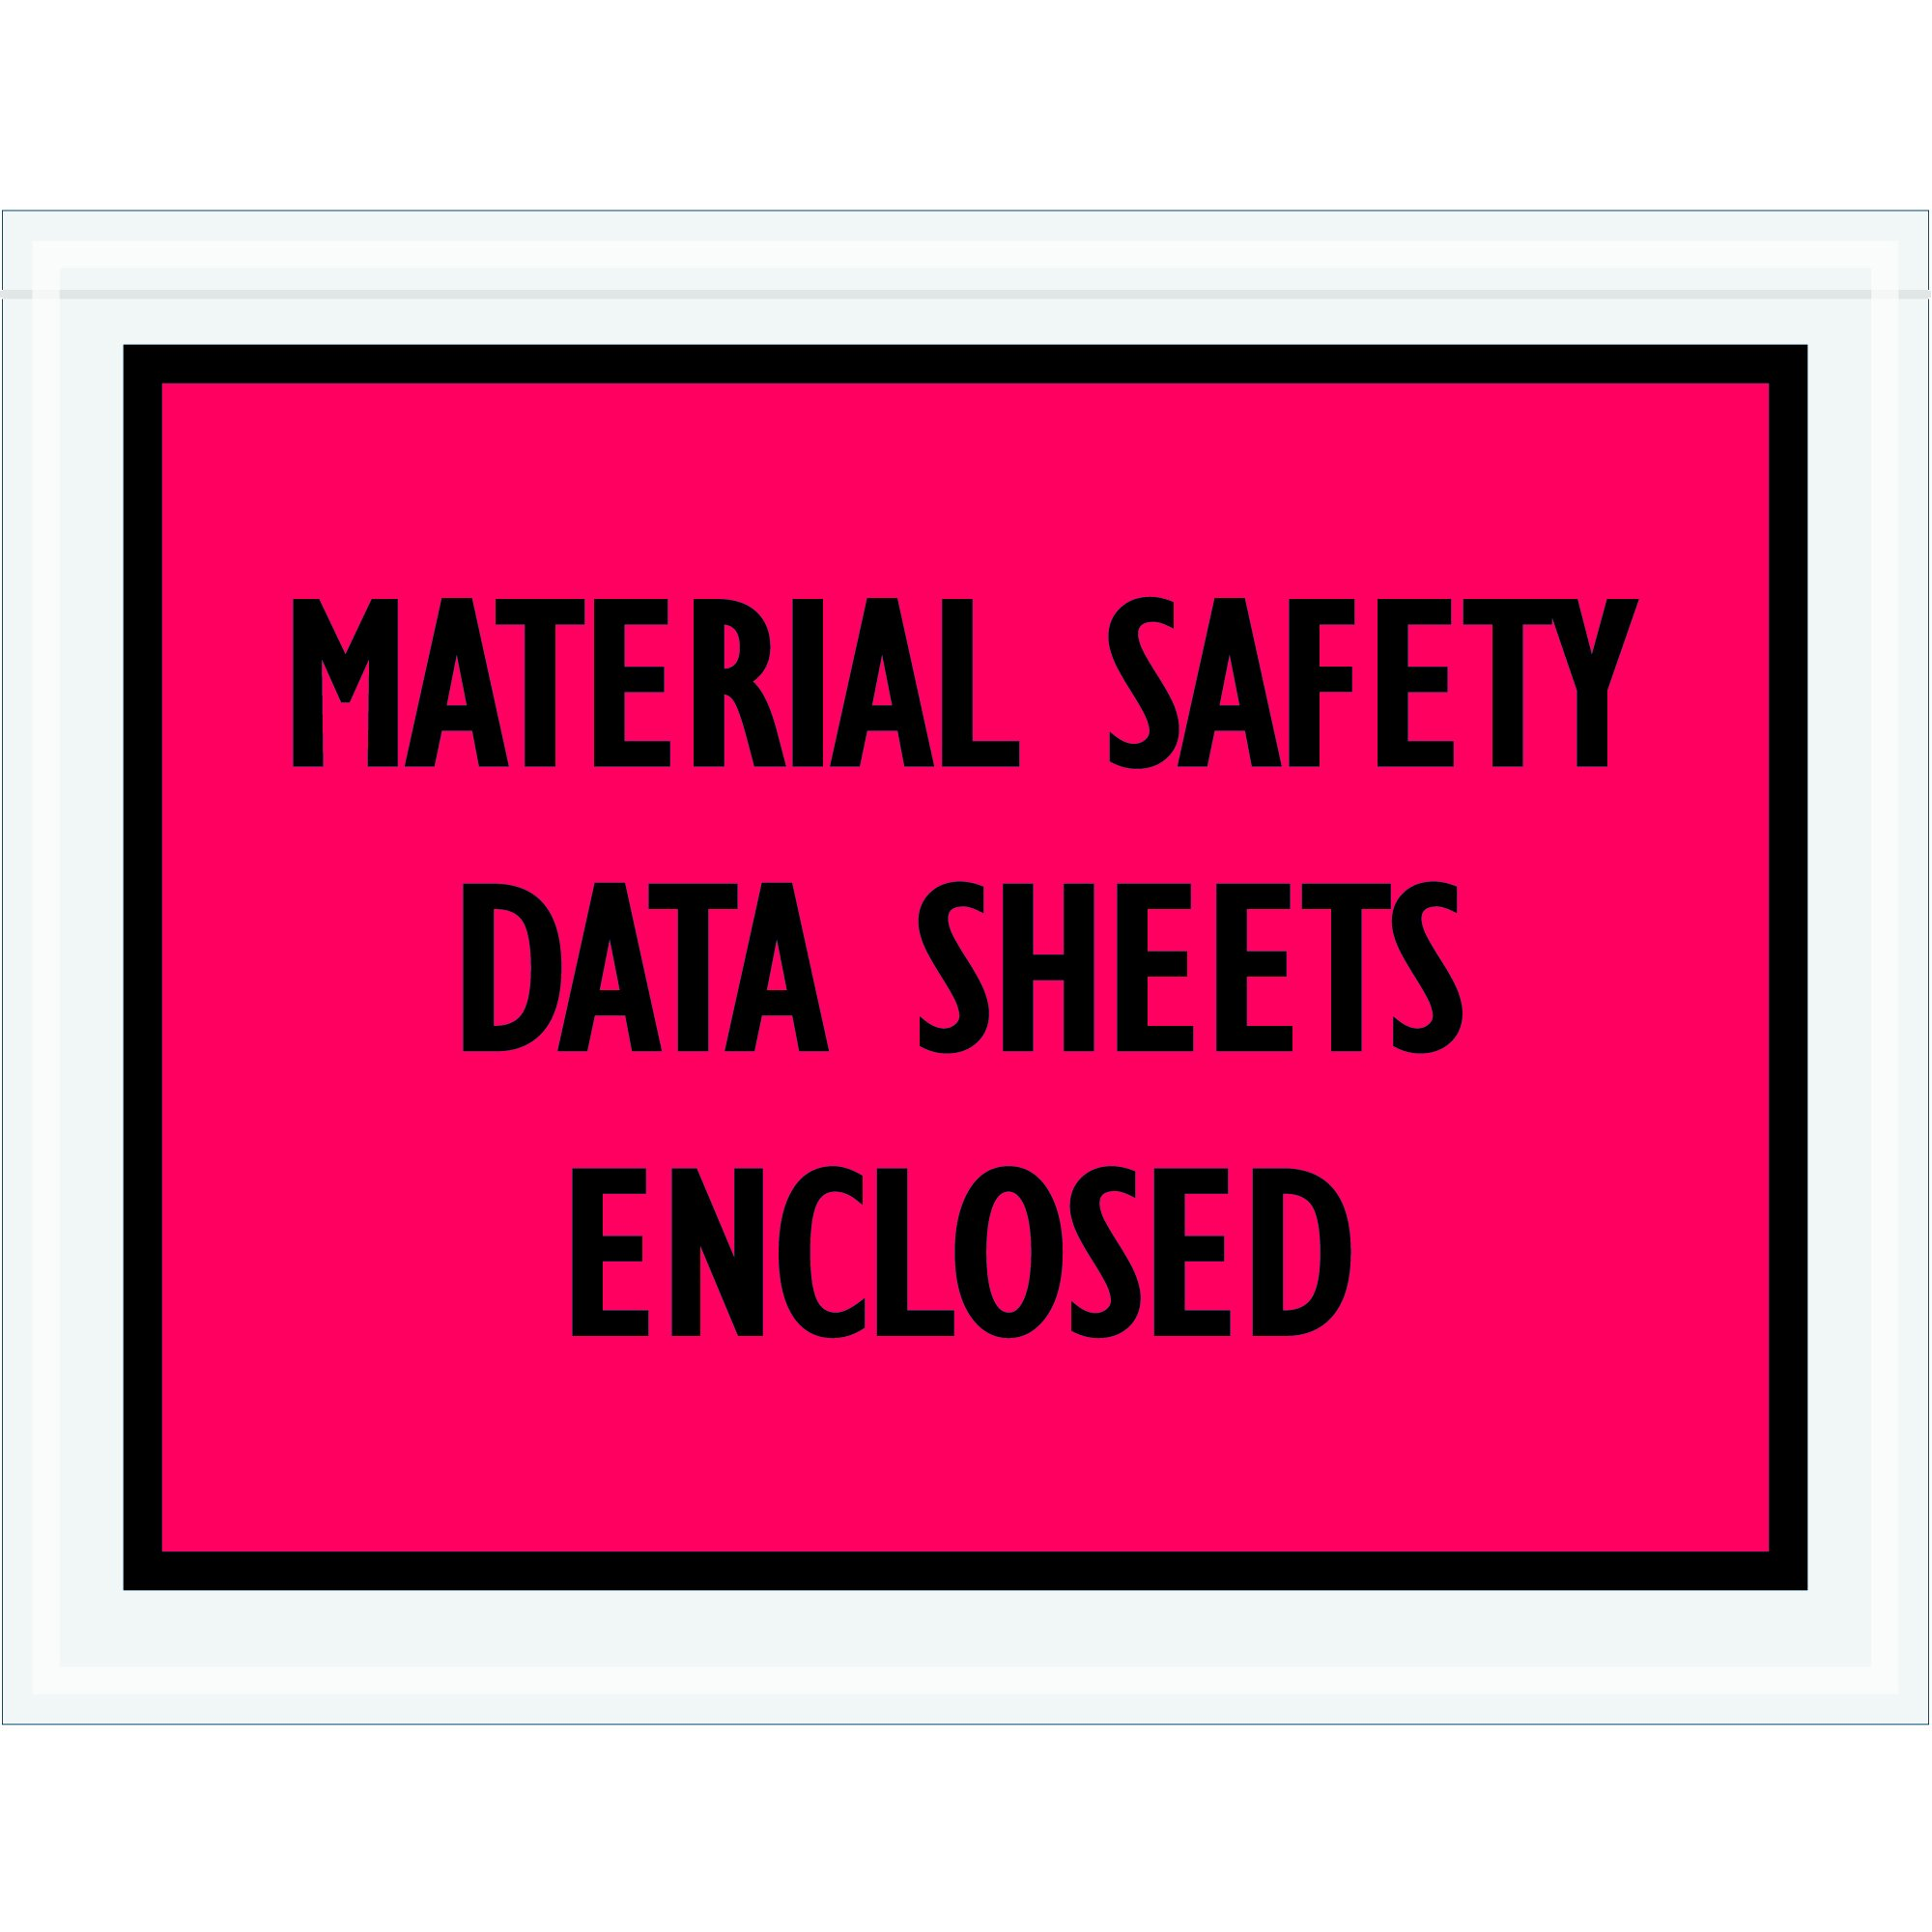 Ship Now Supply SNPL422 ''Material SAFETY Data Sheets Enclosed'' Envelopes, 7'' x 5 1/2'', 5width, 7'' Length, Red/black (Pack of 1000) by Ship Now Supply (Image #1)